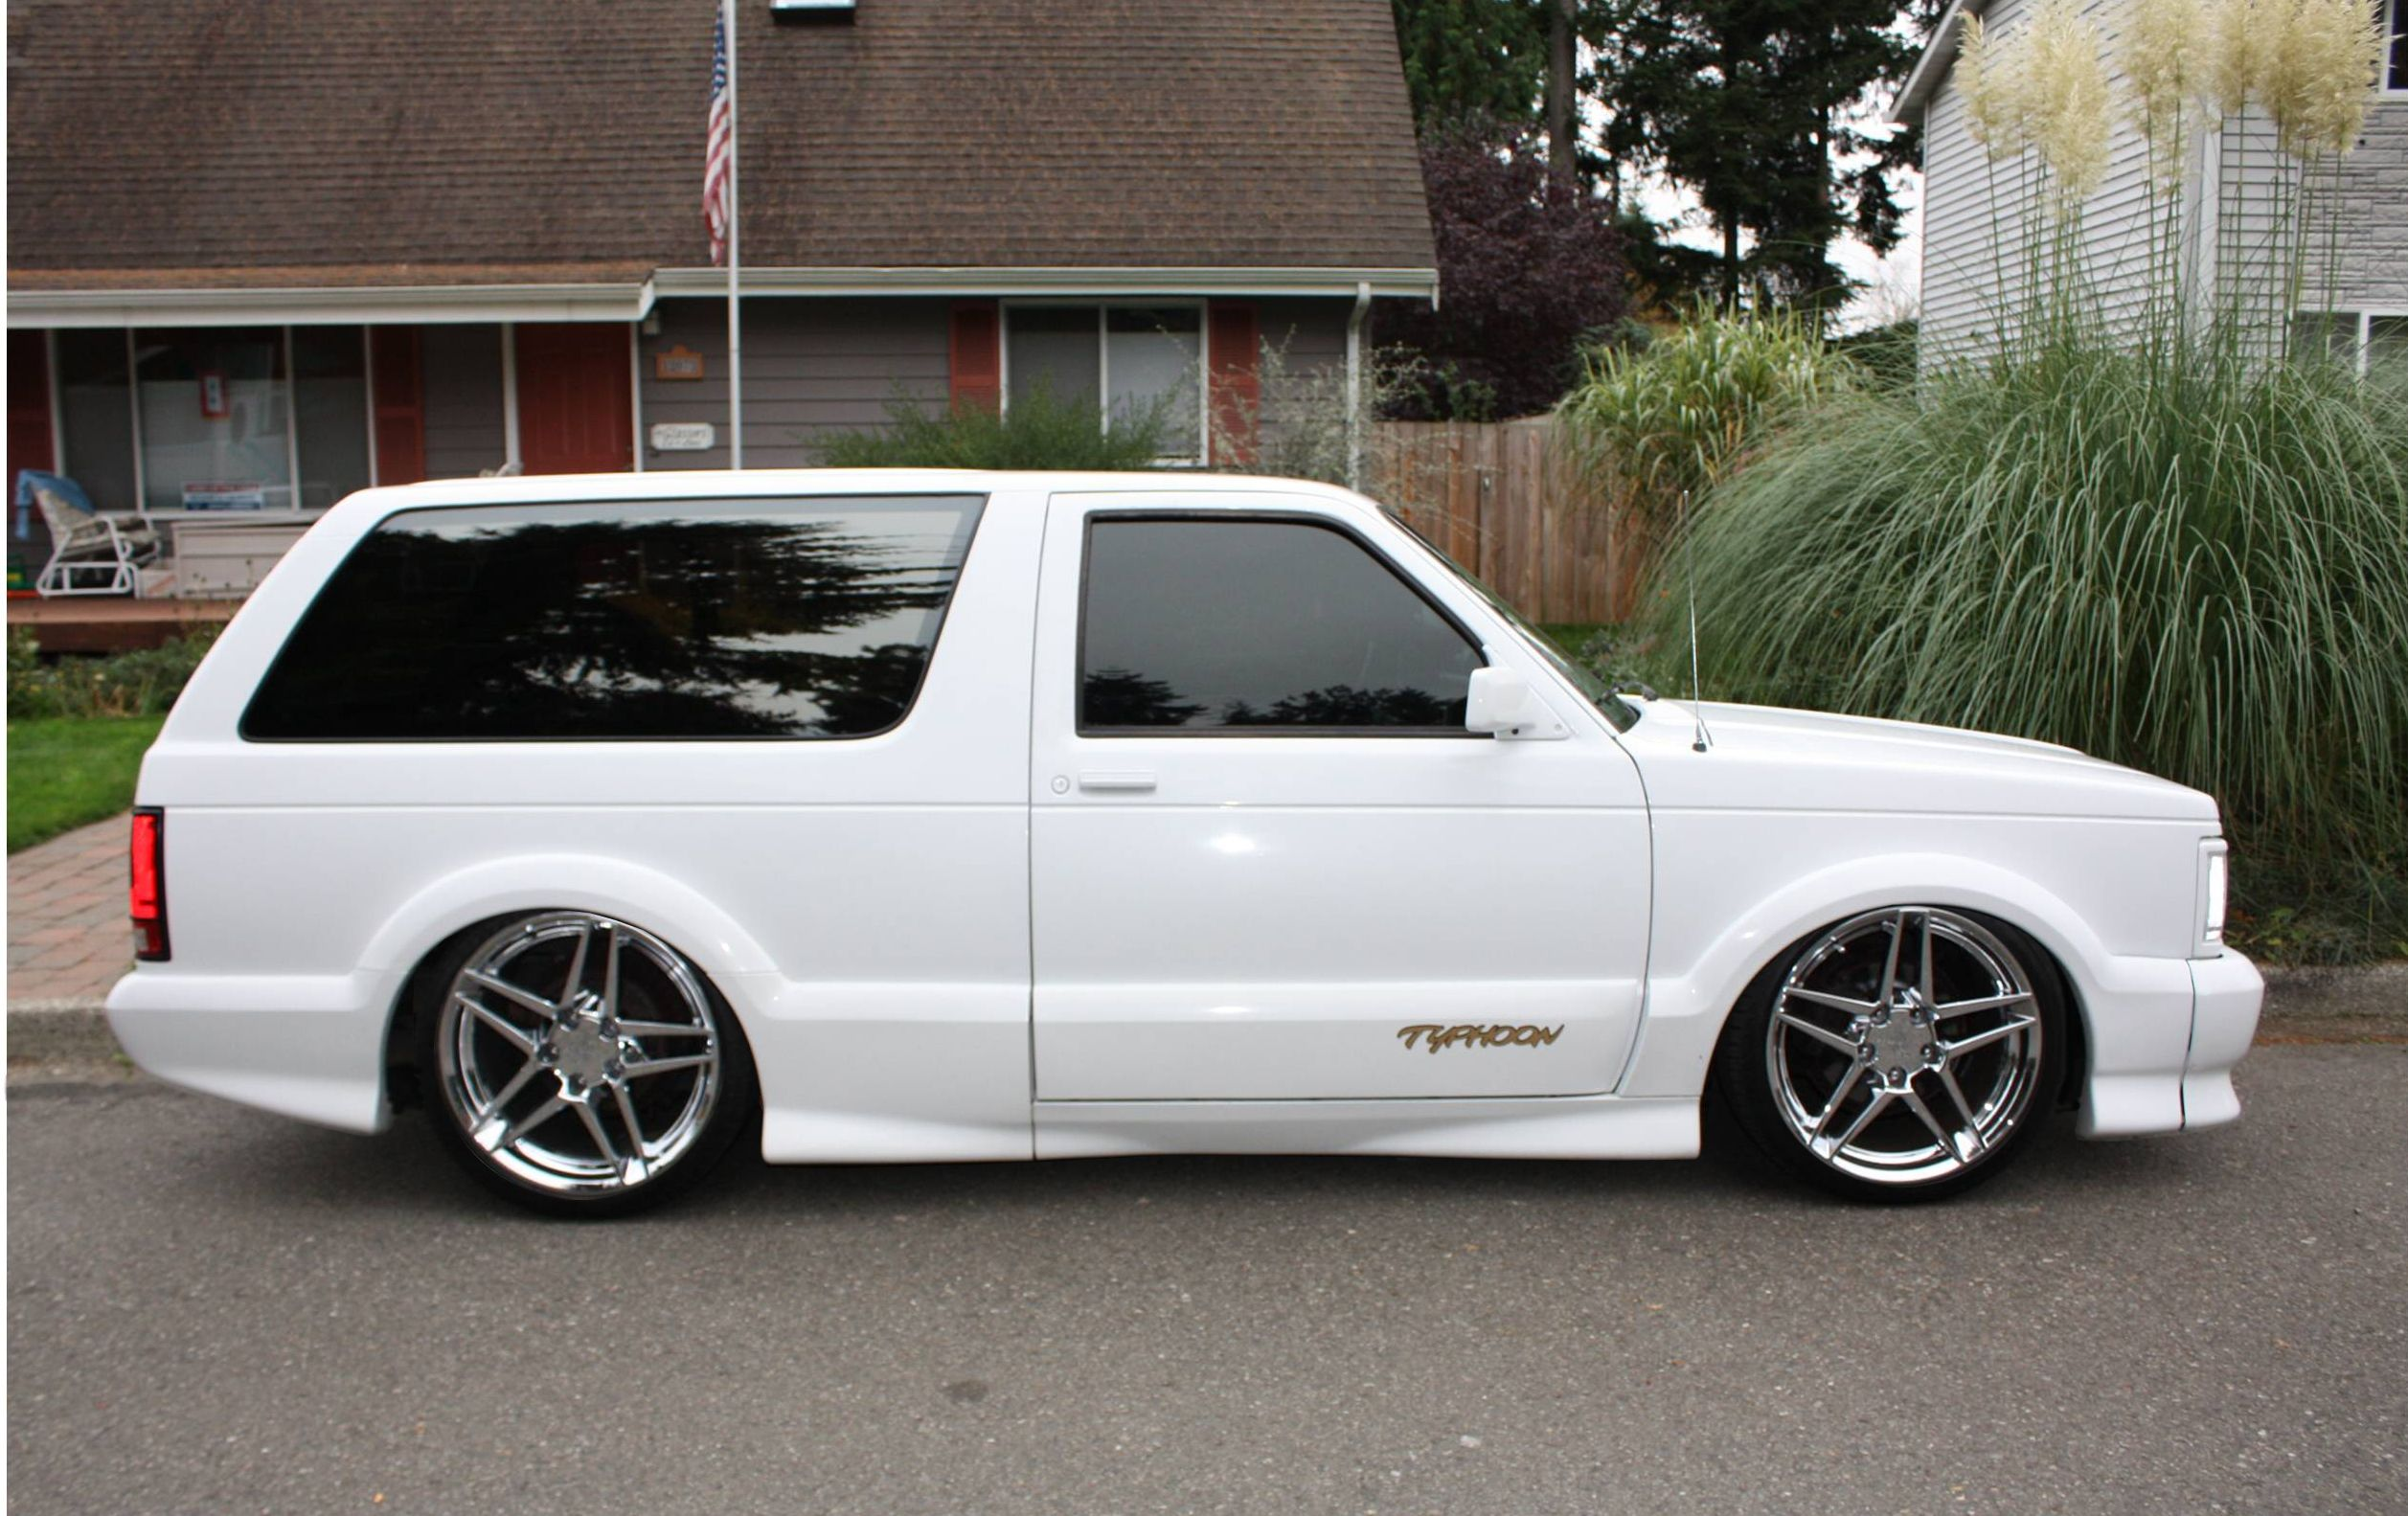 GMC Typhoon    love to have this masterpiece   S Dime Noma     GMC Typhoon    love to have this masterpiece